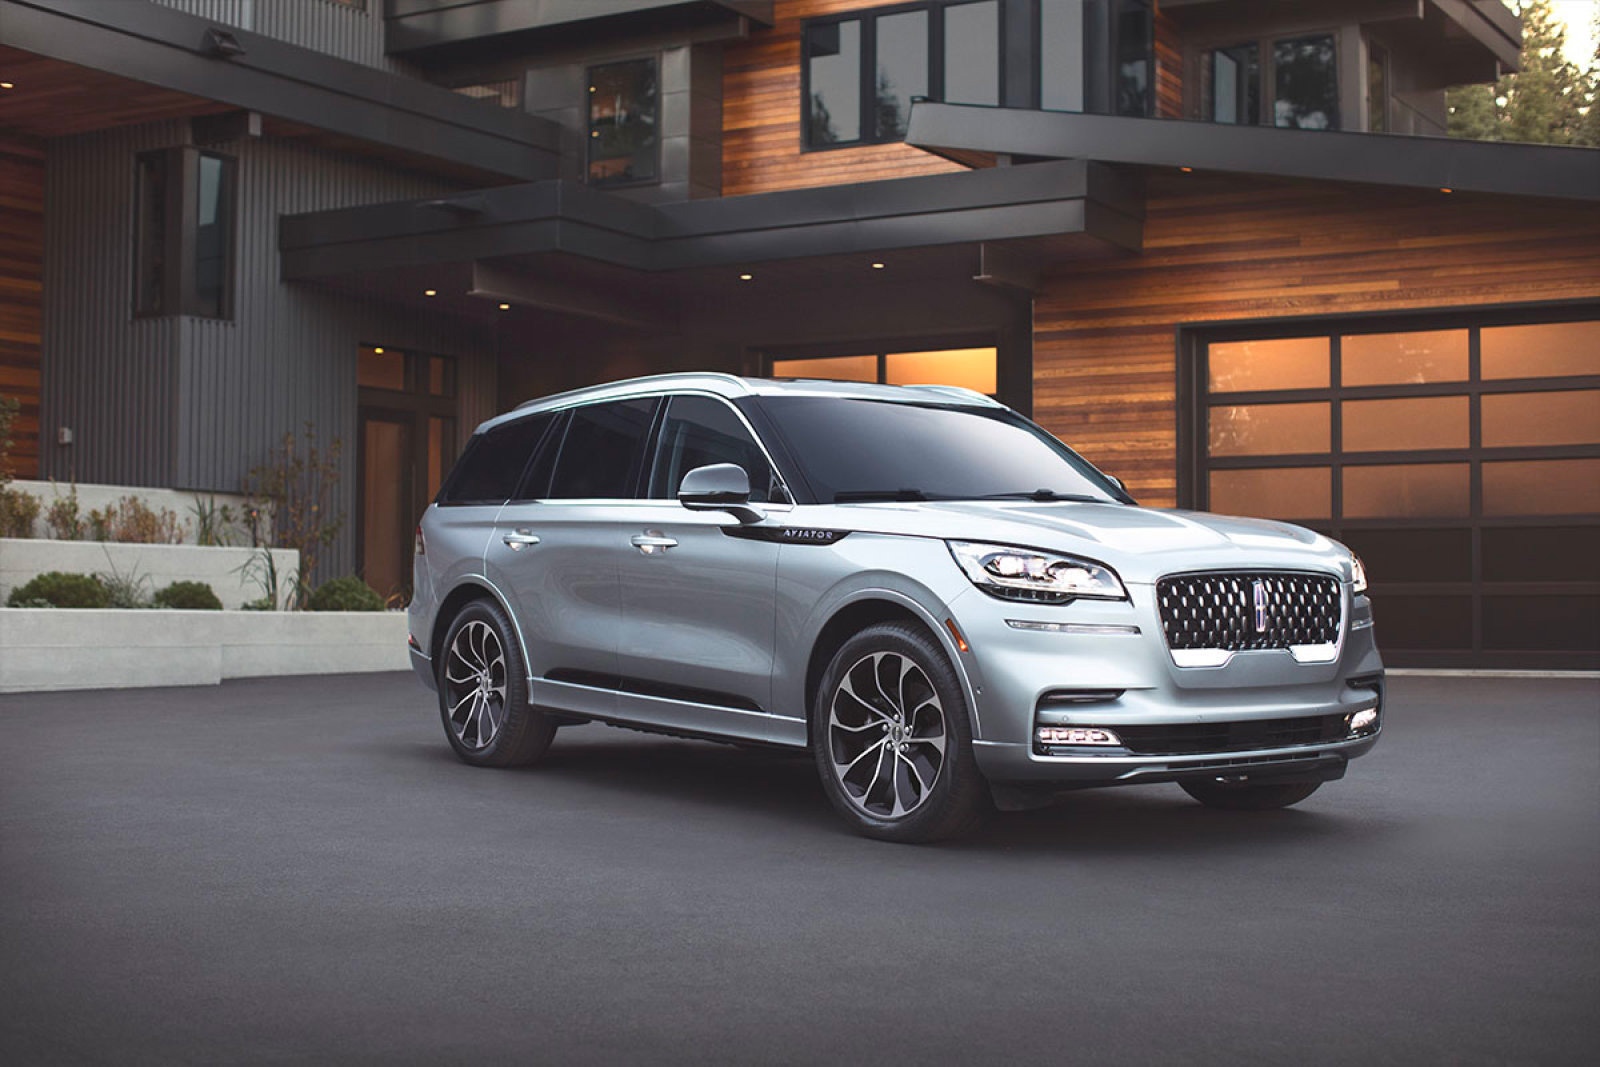 Lincoln Unveils Re-Designed Aviator SUV for 2020 at werd.com